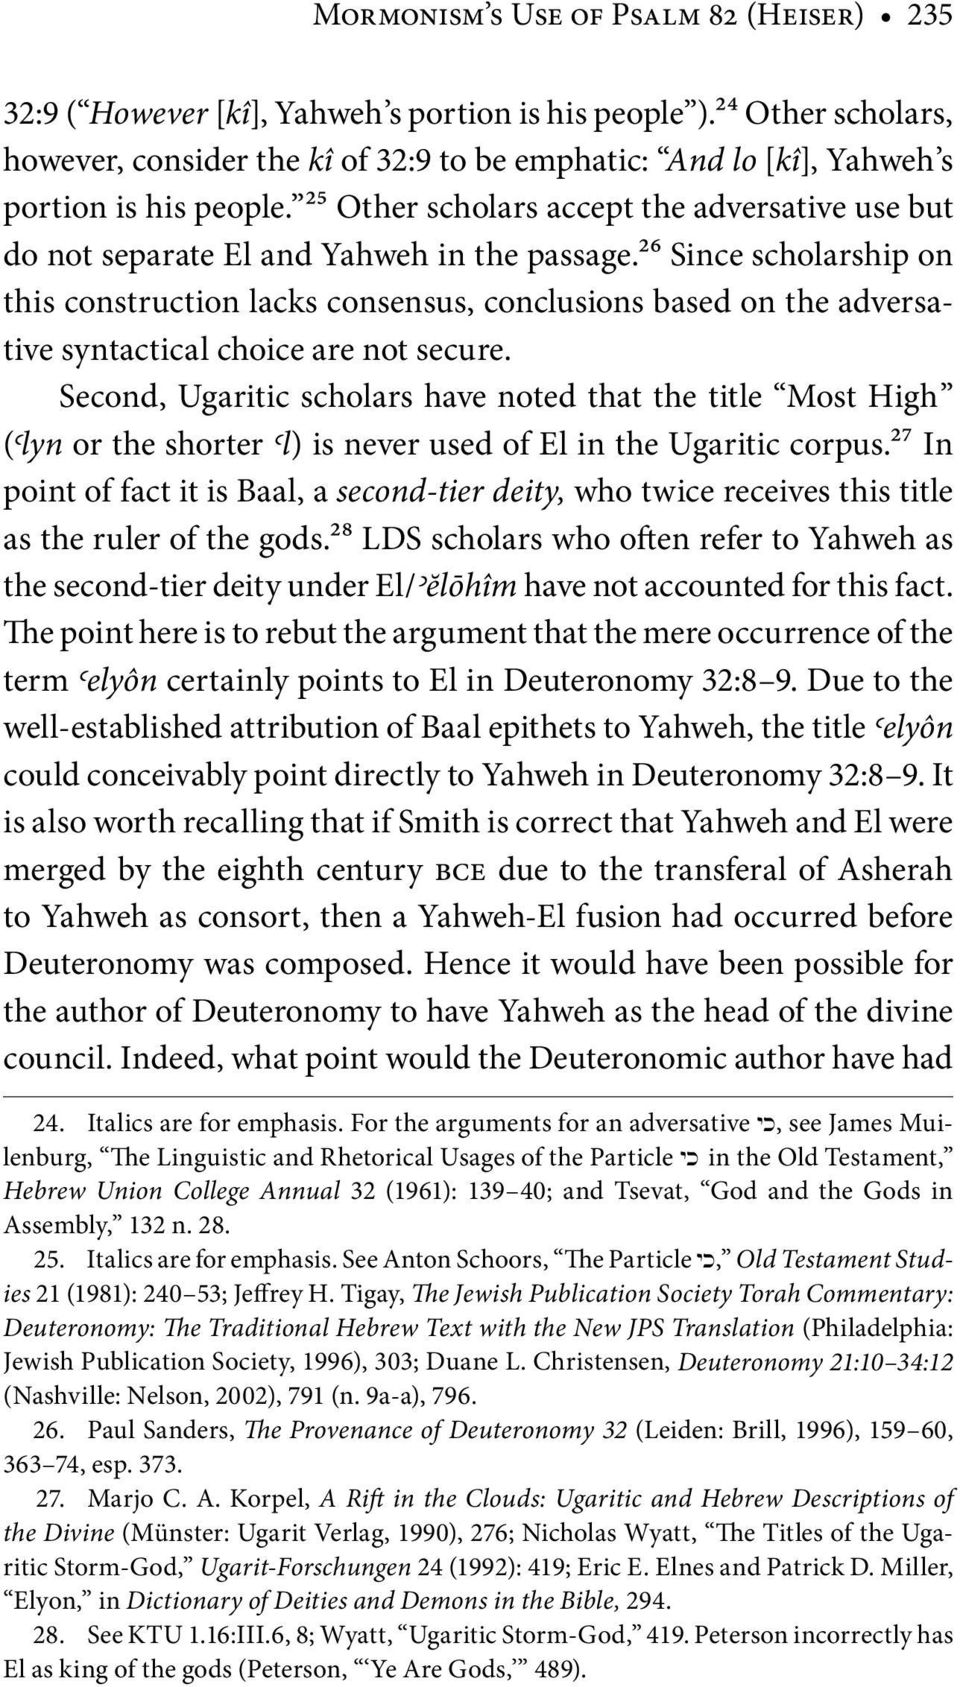 25 Other scholars accept the adversative use but do not separate El and Yahweh in the passage.